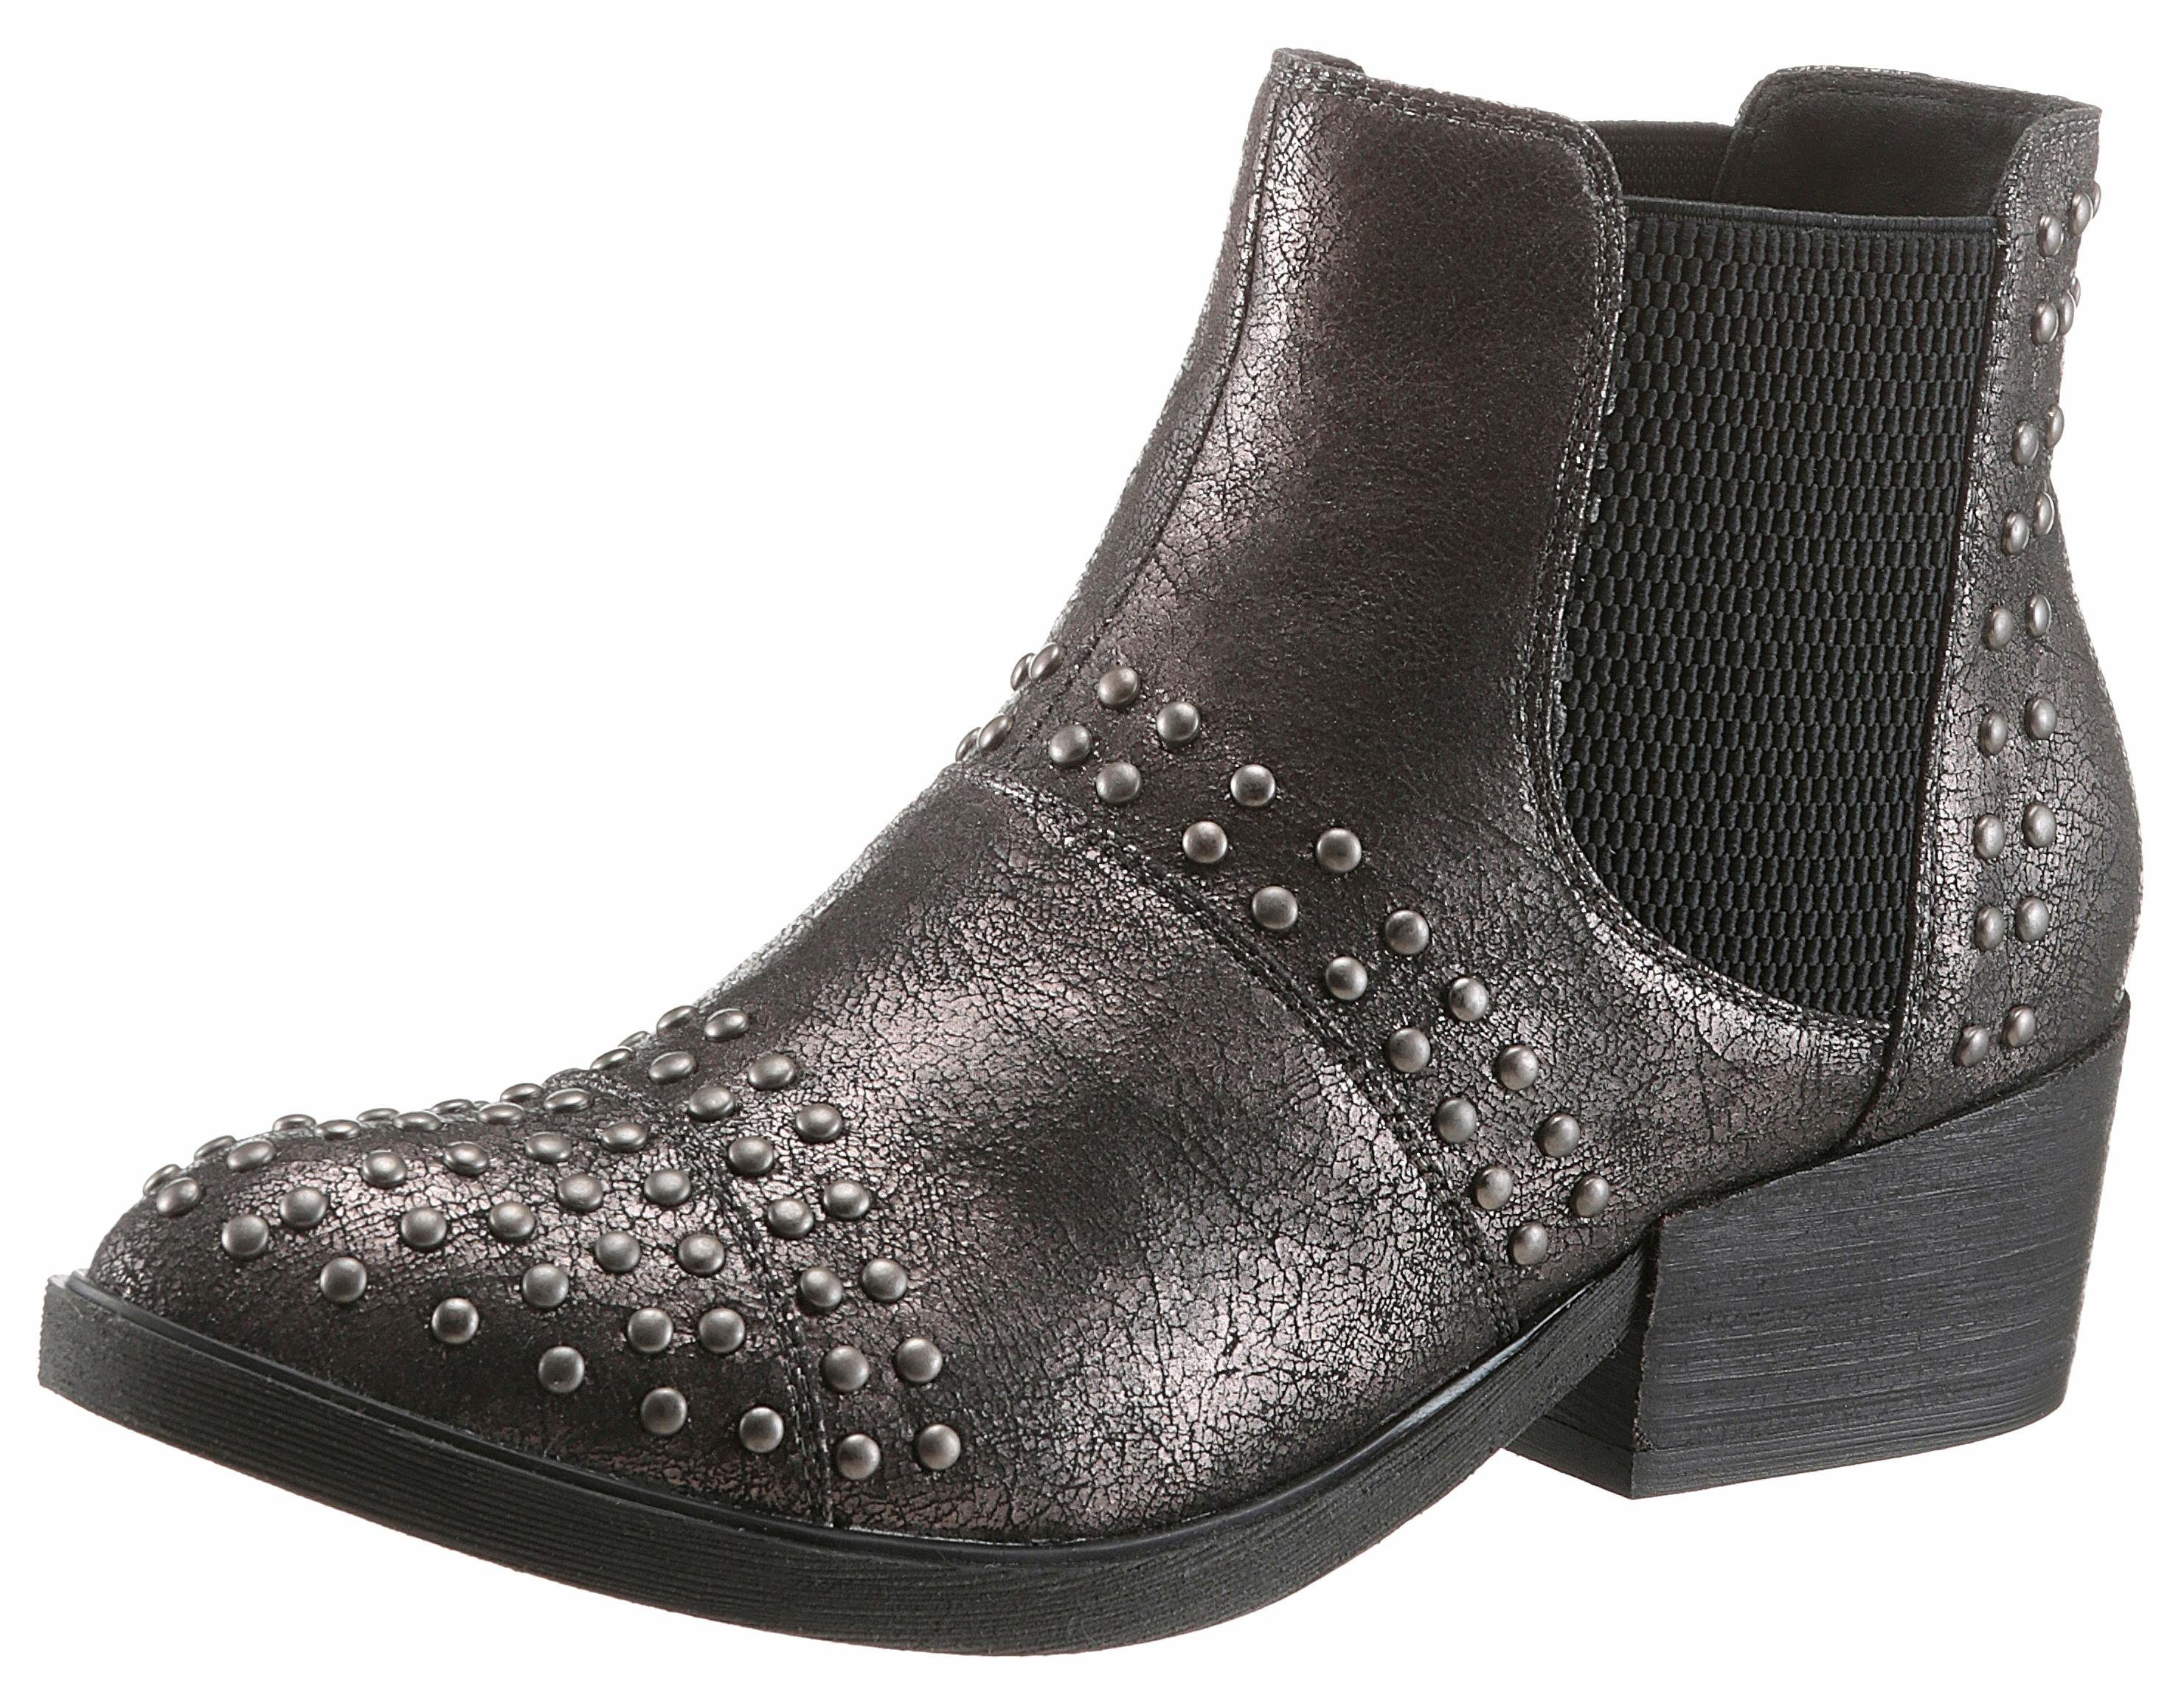 S.oliver Étiquette Rouge Bottes Chelsea Taupe eXEC1awkY